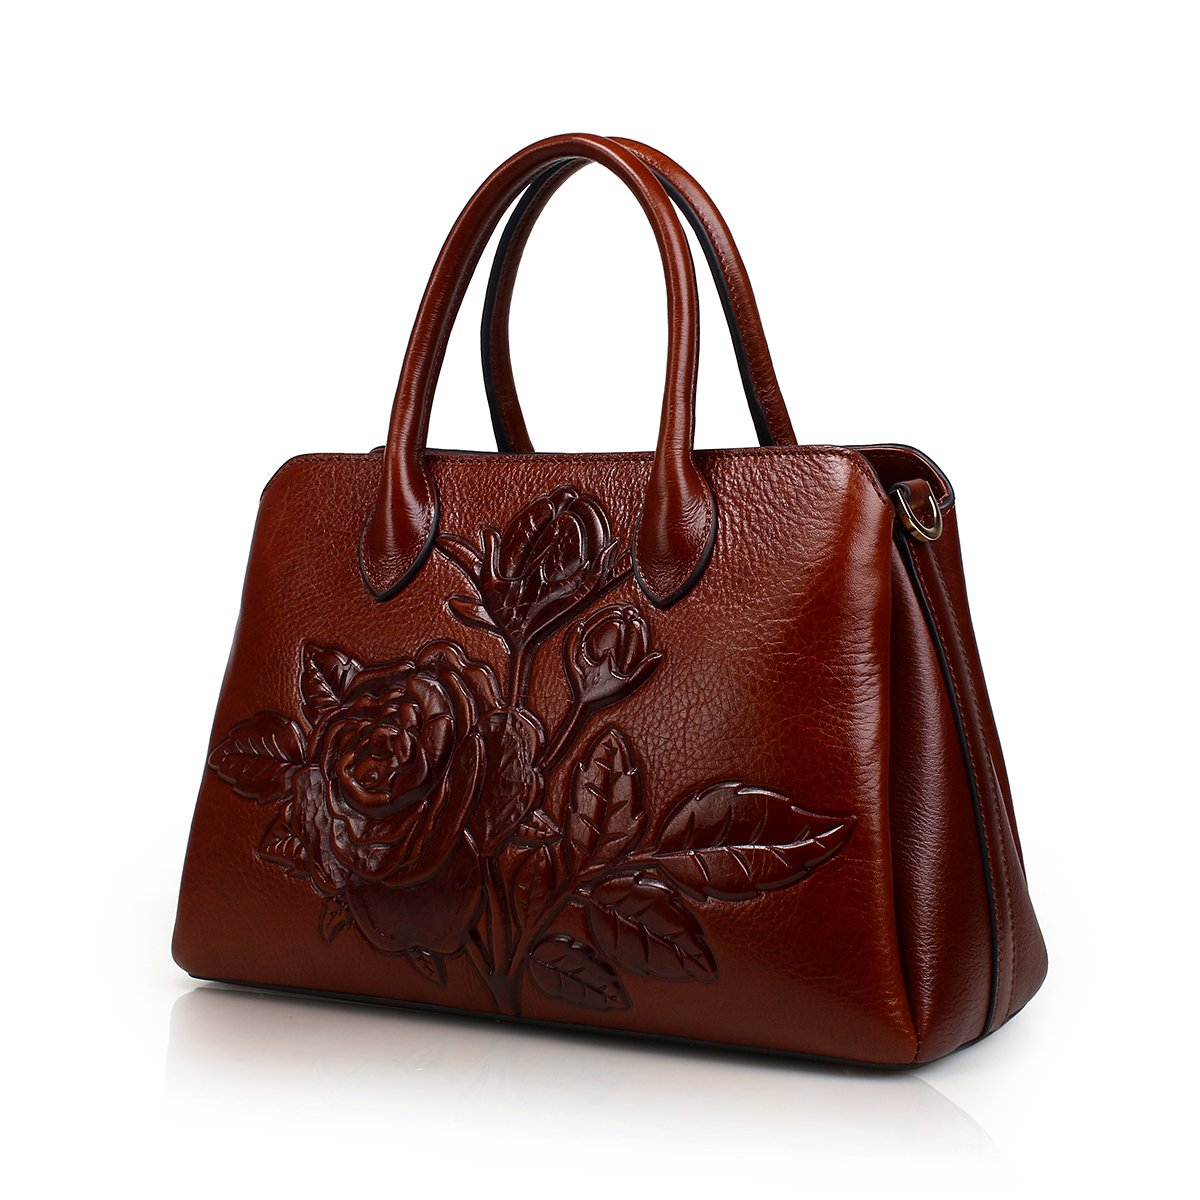 APHISON Designer Unique Embossed Floral Cowhide Leather Tote Style Ladies Top Handle Bag Handbag (Brown) by APHISON